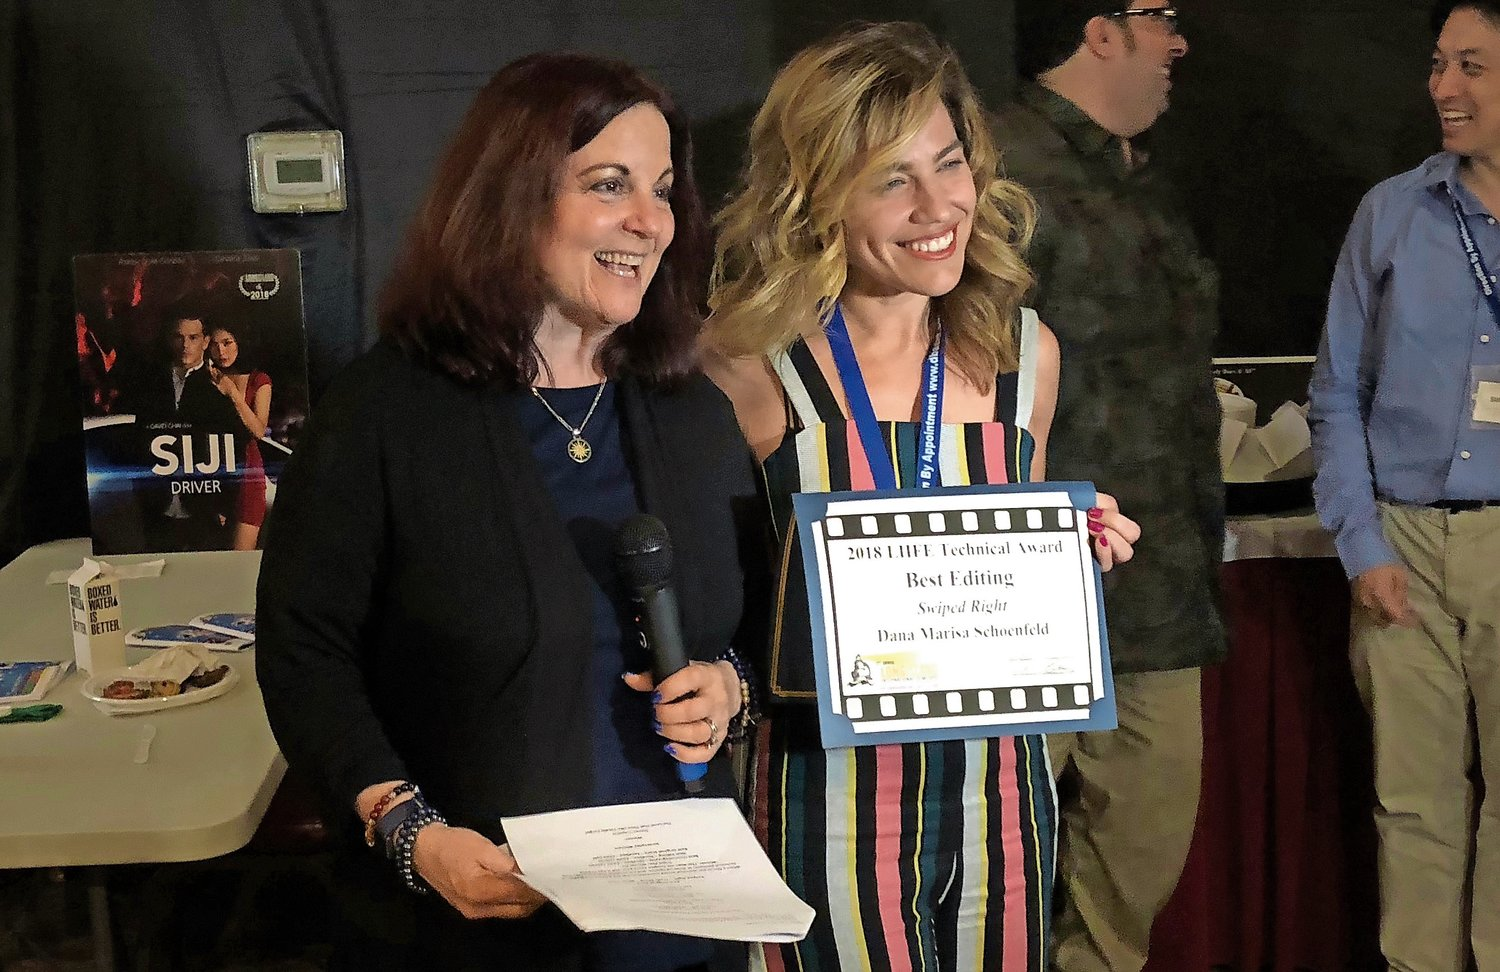 The presentation of technical awards during LIIFE's opening night is a tradition. Nassau County Film Office Director Debra Markowitz, far left, with Best Editing winner Dana Schoenfeld in 2018.